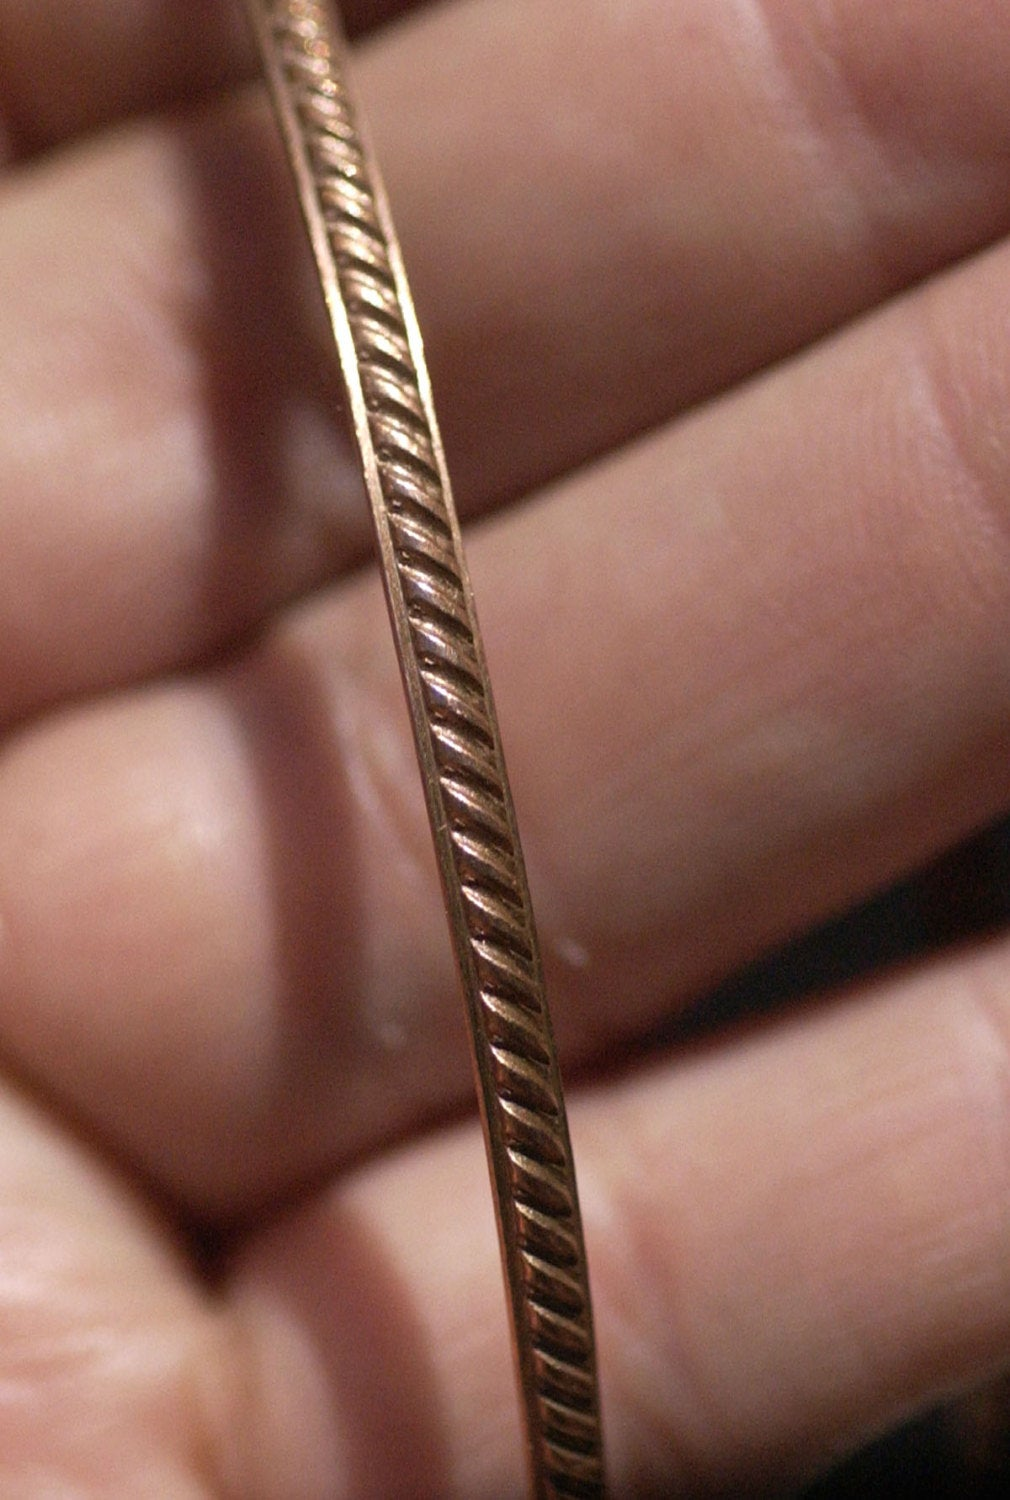 Ring Diagonal Lines Stock Shank 2.6mm Double Dots Metal Wire - Rings Bracelets Pendants Metalwork Variety of Metals